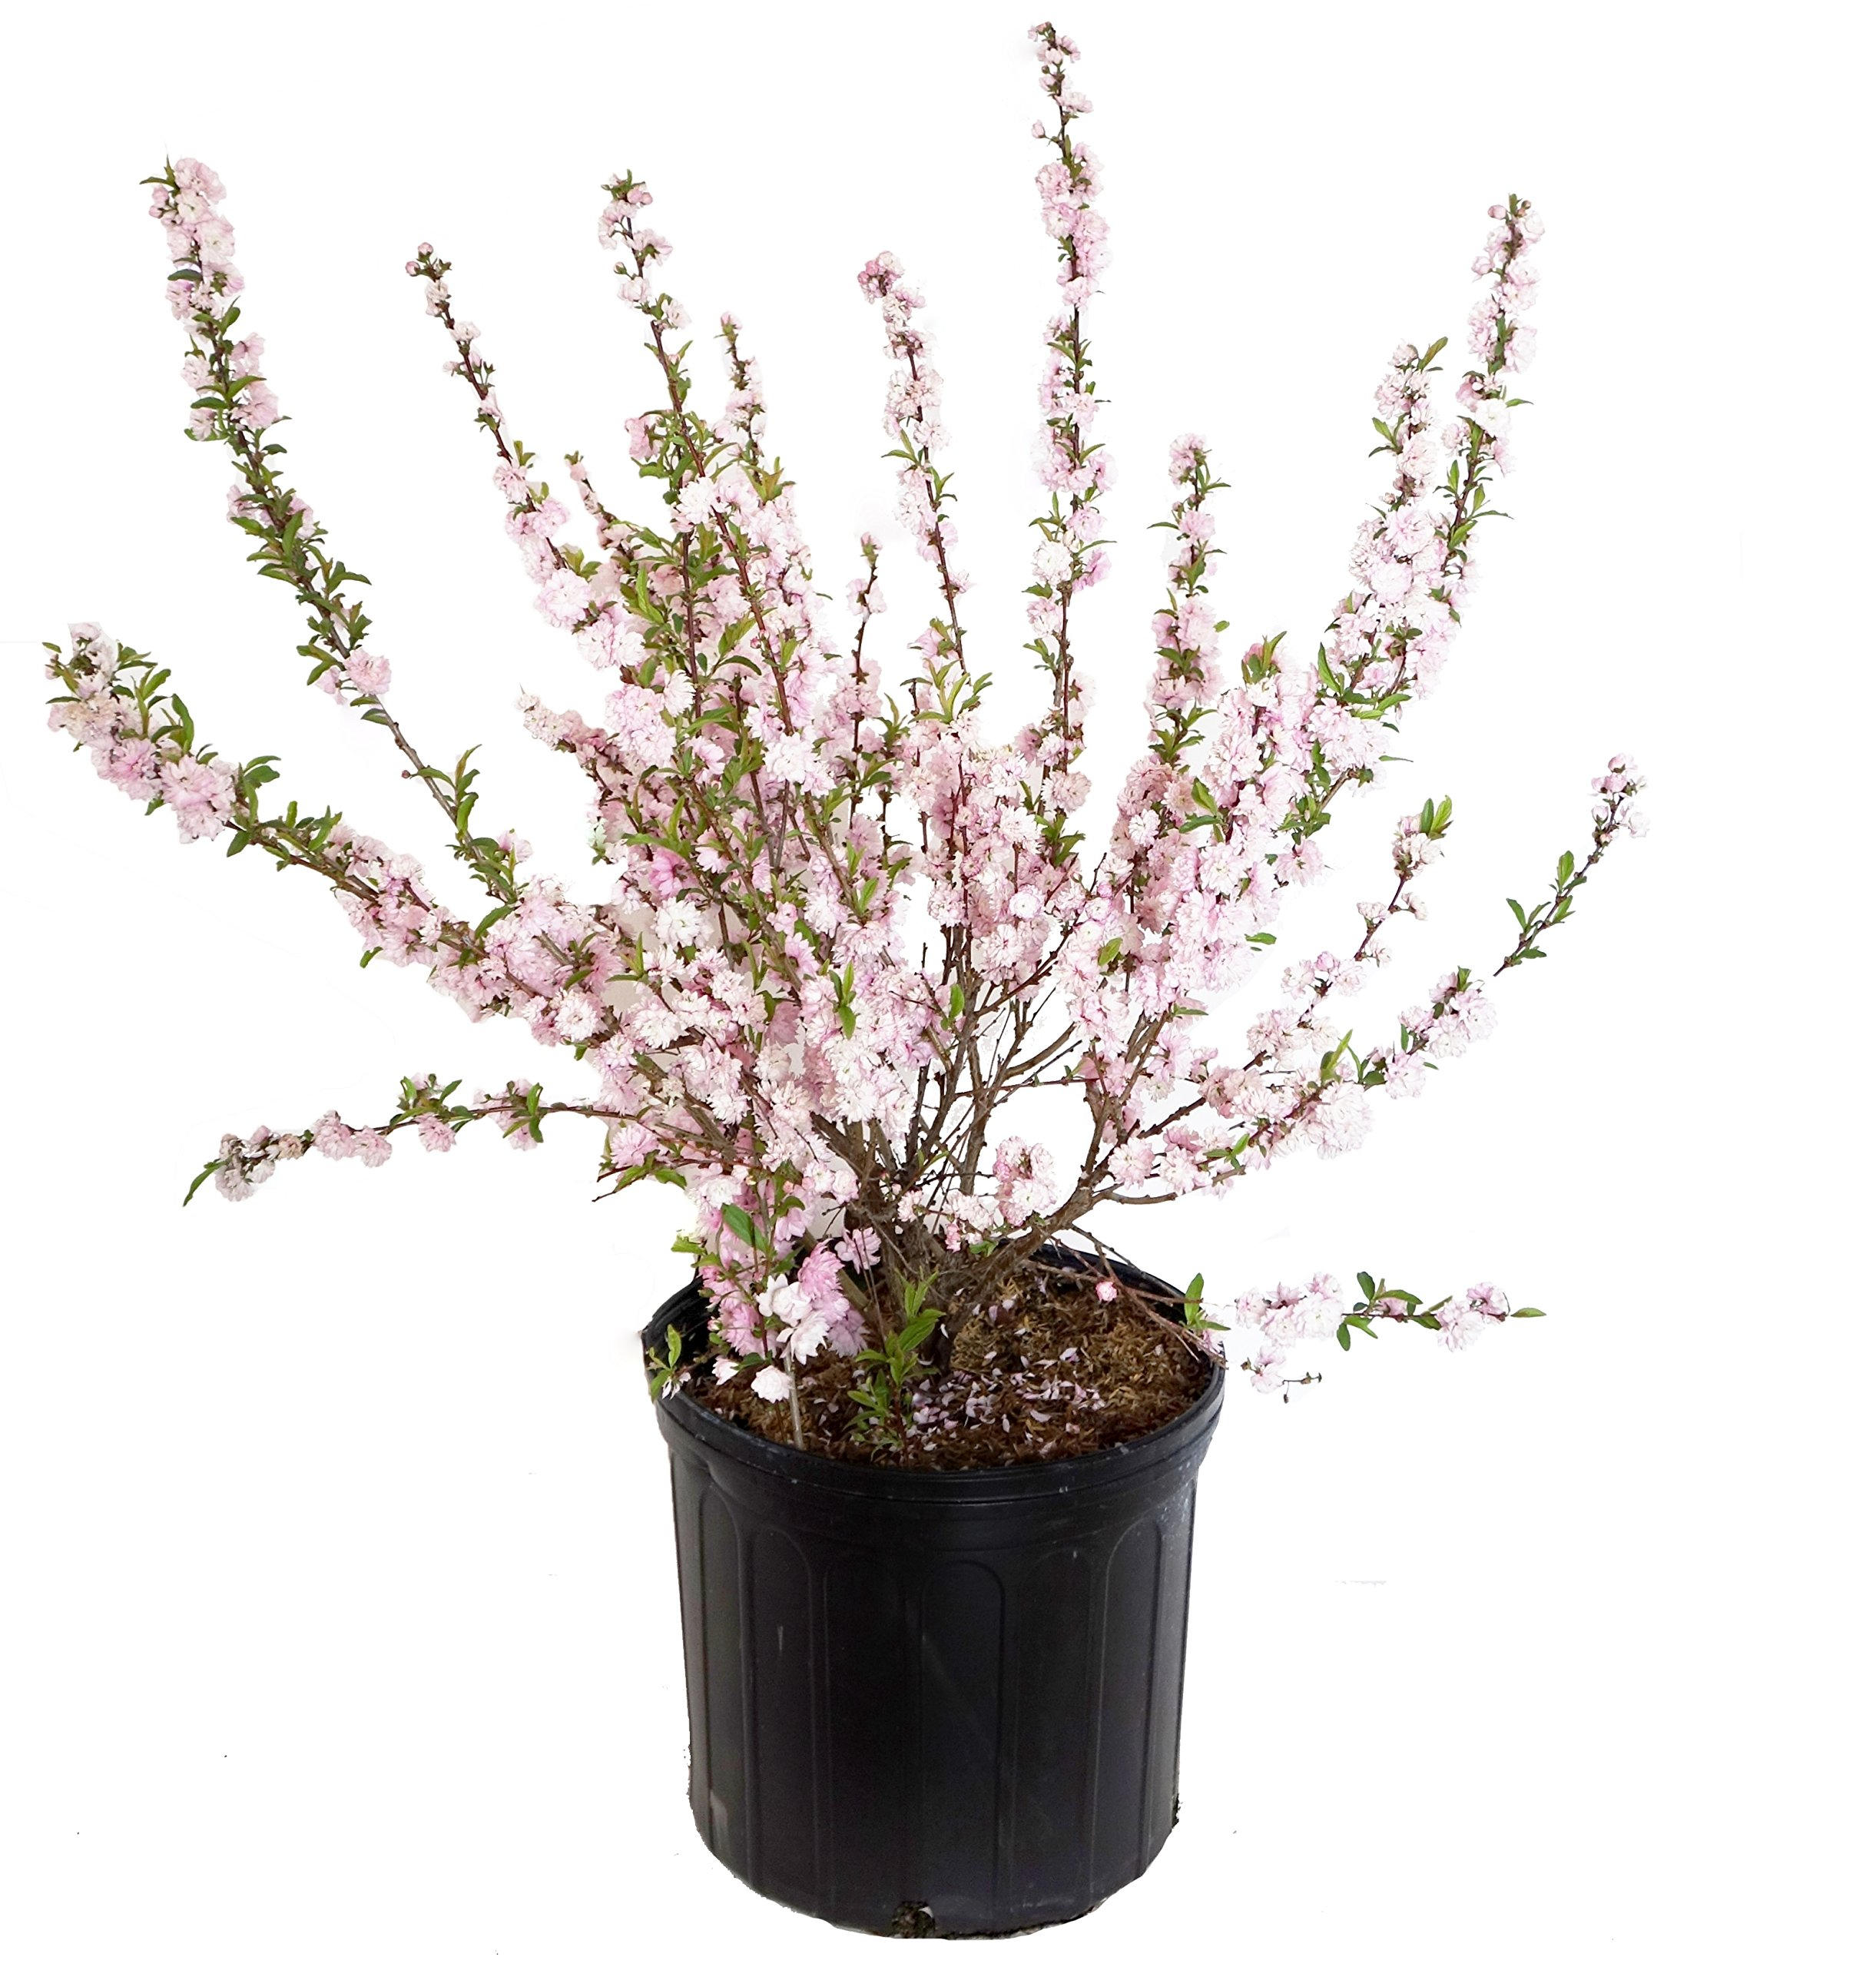 Prunus glandulosa 'Rosea' (Pink Flowering Almond) Shrub, #3 - Size Container by Green Promise Farms